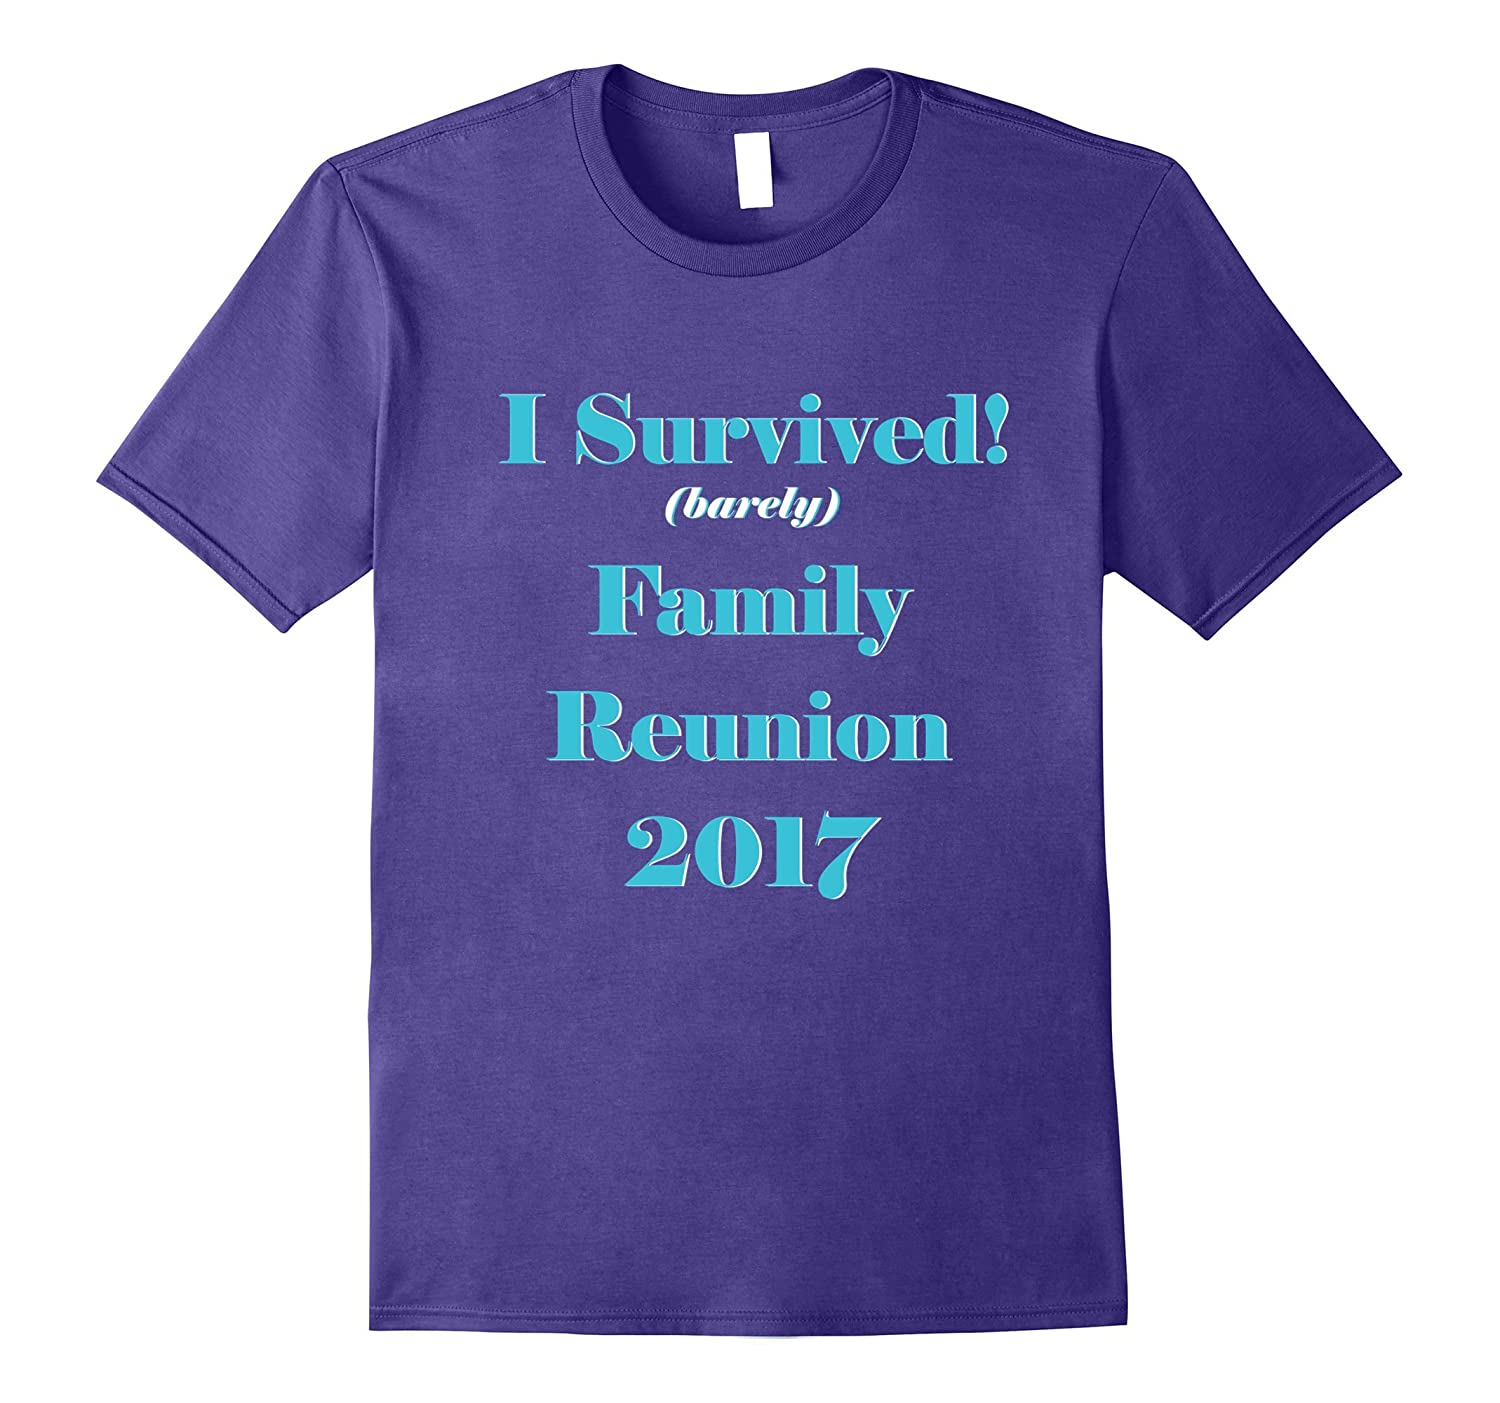 Family Reunion 2017 Funny Shirt - I Survived-Vaci